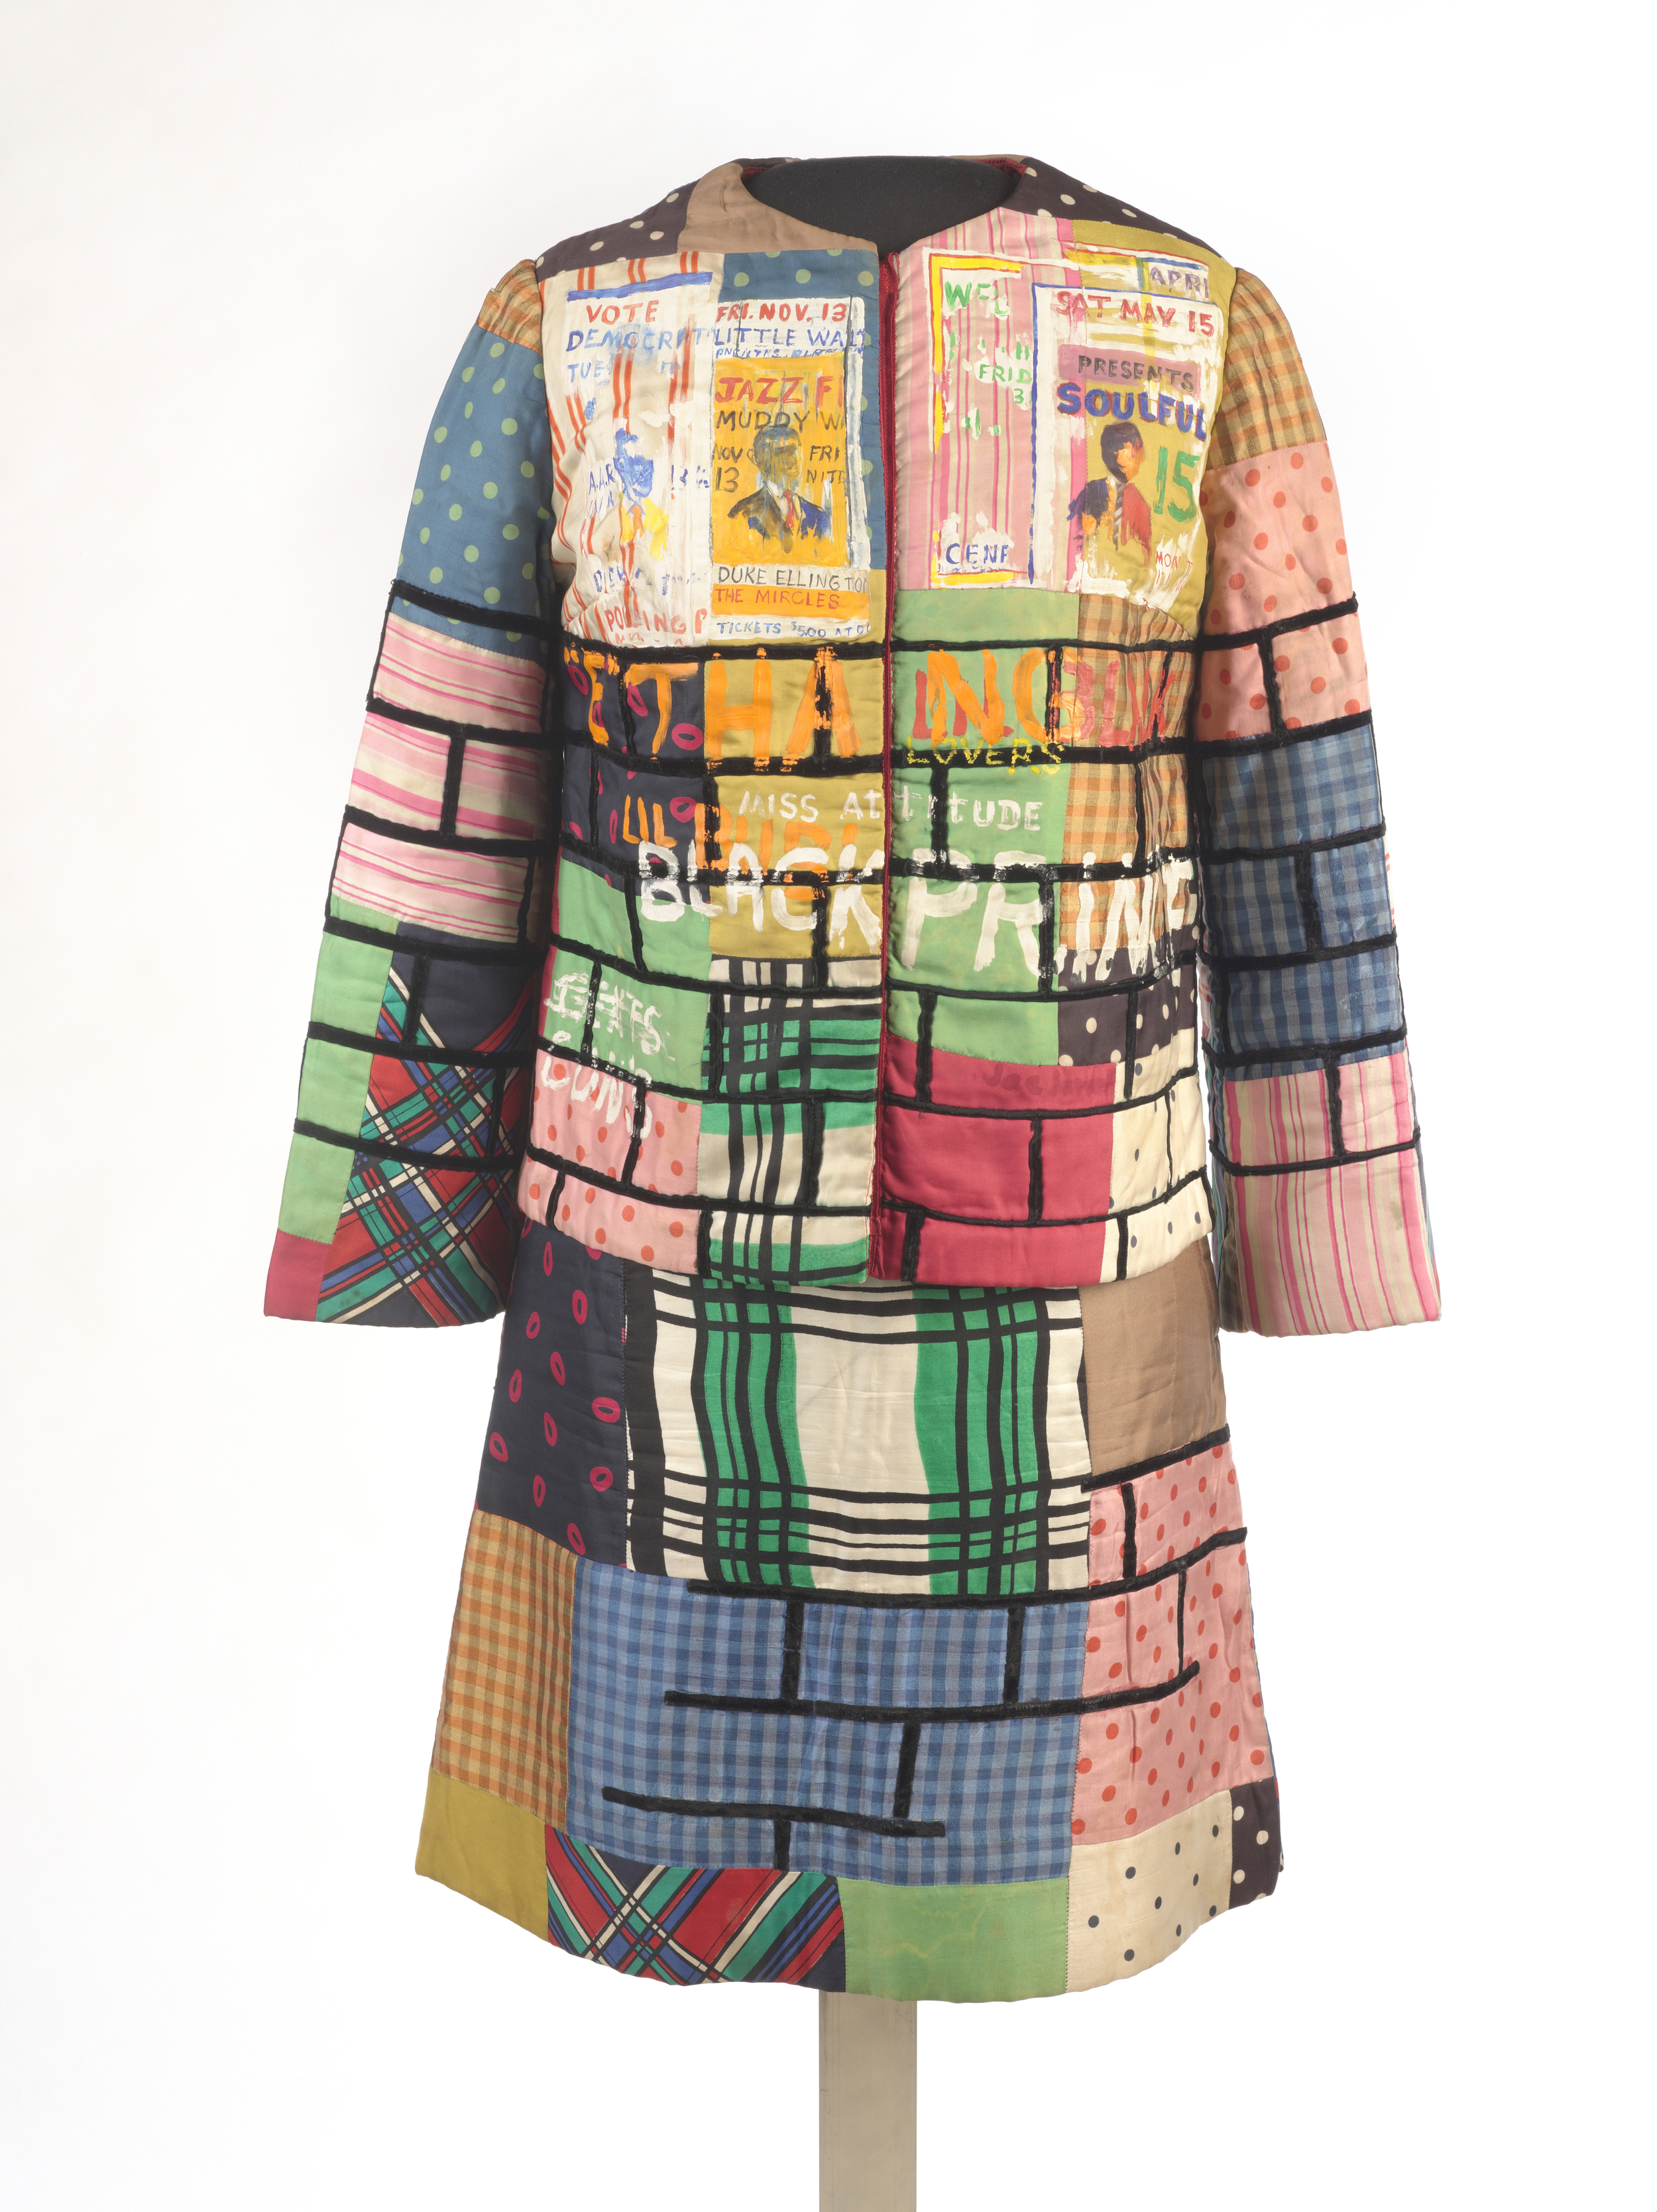 Jae Jarrell (American, born 1935). Urban Wall Suit, ca. 1969. Sewn and painted cotton and silk, two-piece suit, 37 1/2 x 27 1/2 x 1/2 in. (95.3 x 69.9 x 1.3 cm). Brooklyn Museum, Gift of R.M. Atwater, Anna Wolfrom Dove, Alice Fiebiger, Joseph Fiebiger, Belle Campbell Harriss, and Emma L. Hyde, by exchange; Designated Purchase Fund, Mary Smith Dorward Fund, Dick S. Ramsay Fund, and Carll H. de Silver Fund, 2012.80.16. © Jae Jarrell   Witness: Art and Civil Rights in the Sixties is organized by the Brooklyn Museum